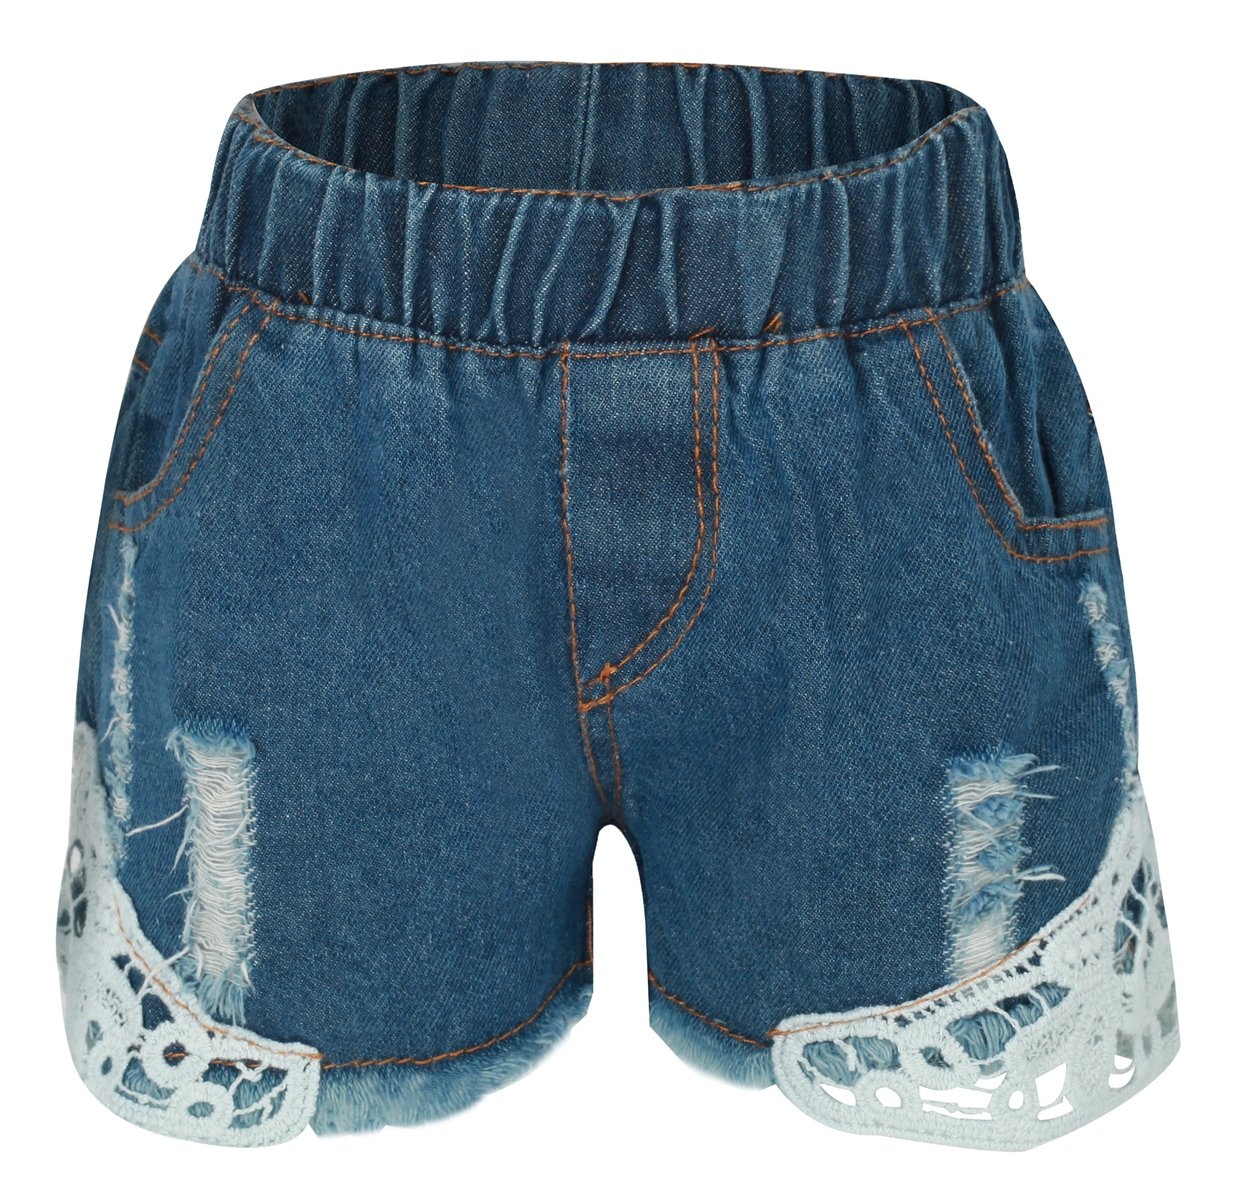 Betusline Kids Girls Ripped Holes Jeans Denim Short With Lace Blue,7 Years